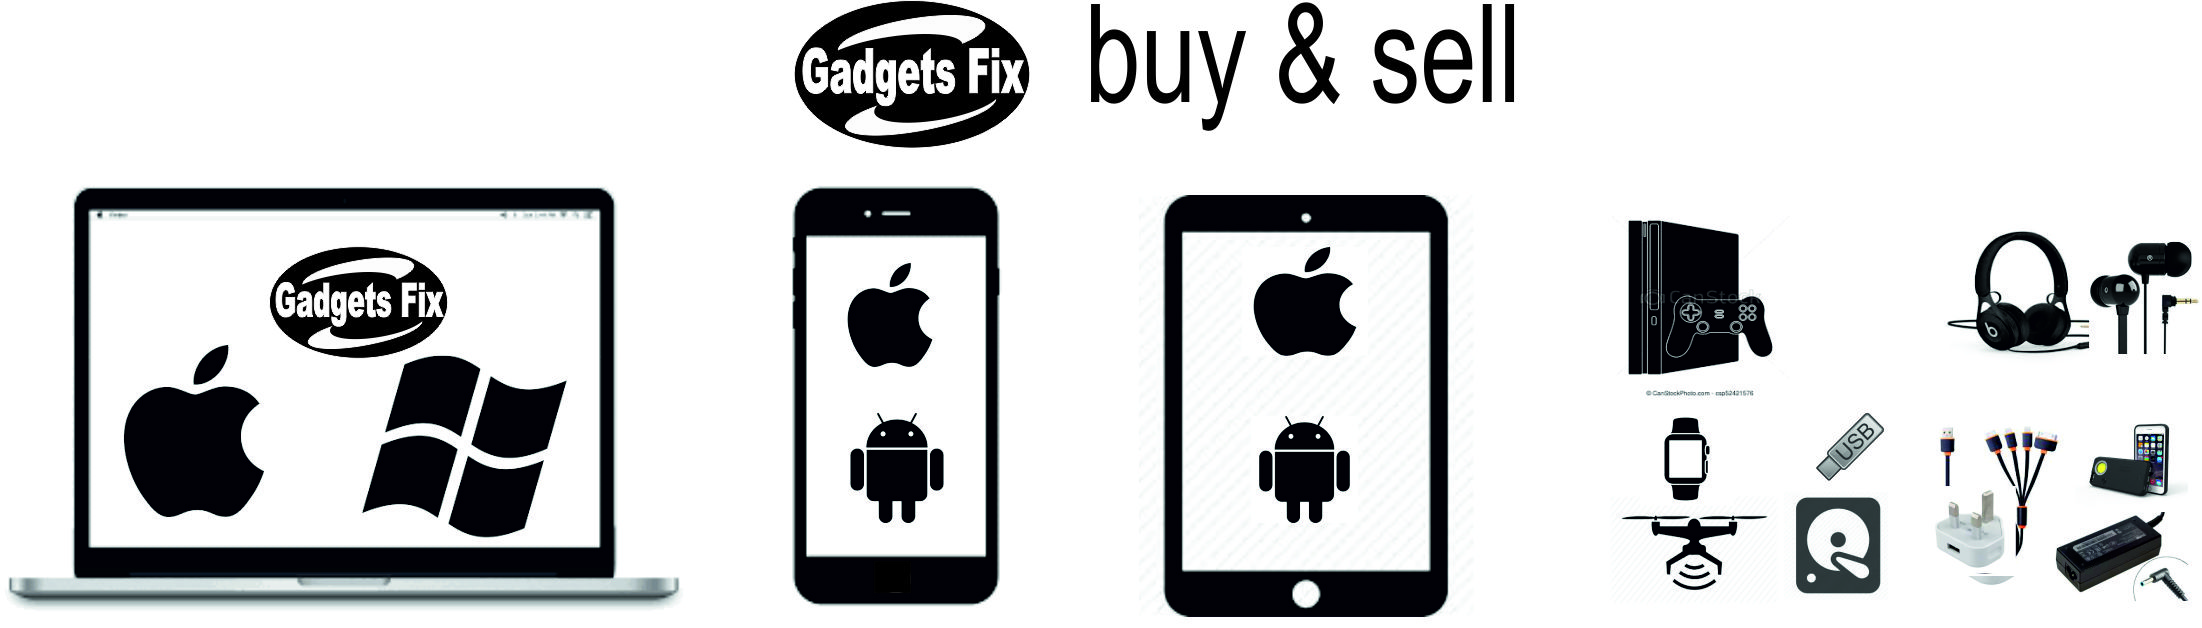 gadgets fix buy & sell laptop, macbooks, iphones, smart phones,tablets,consoles